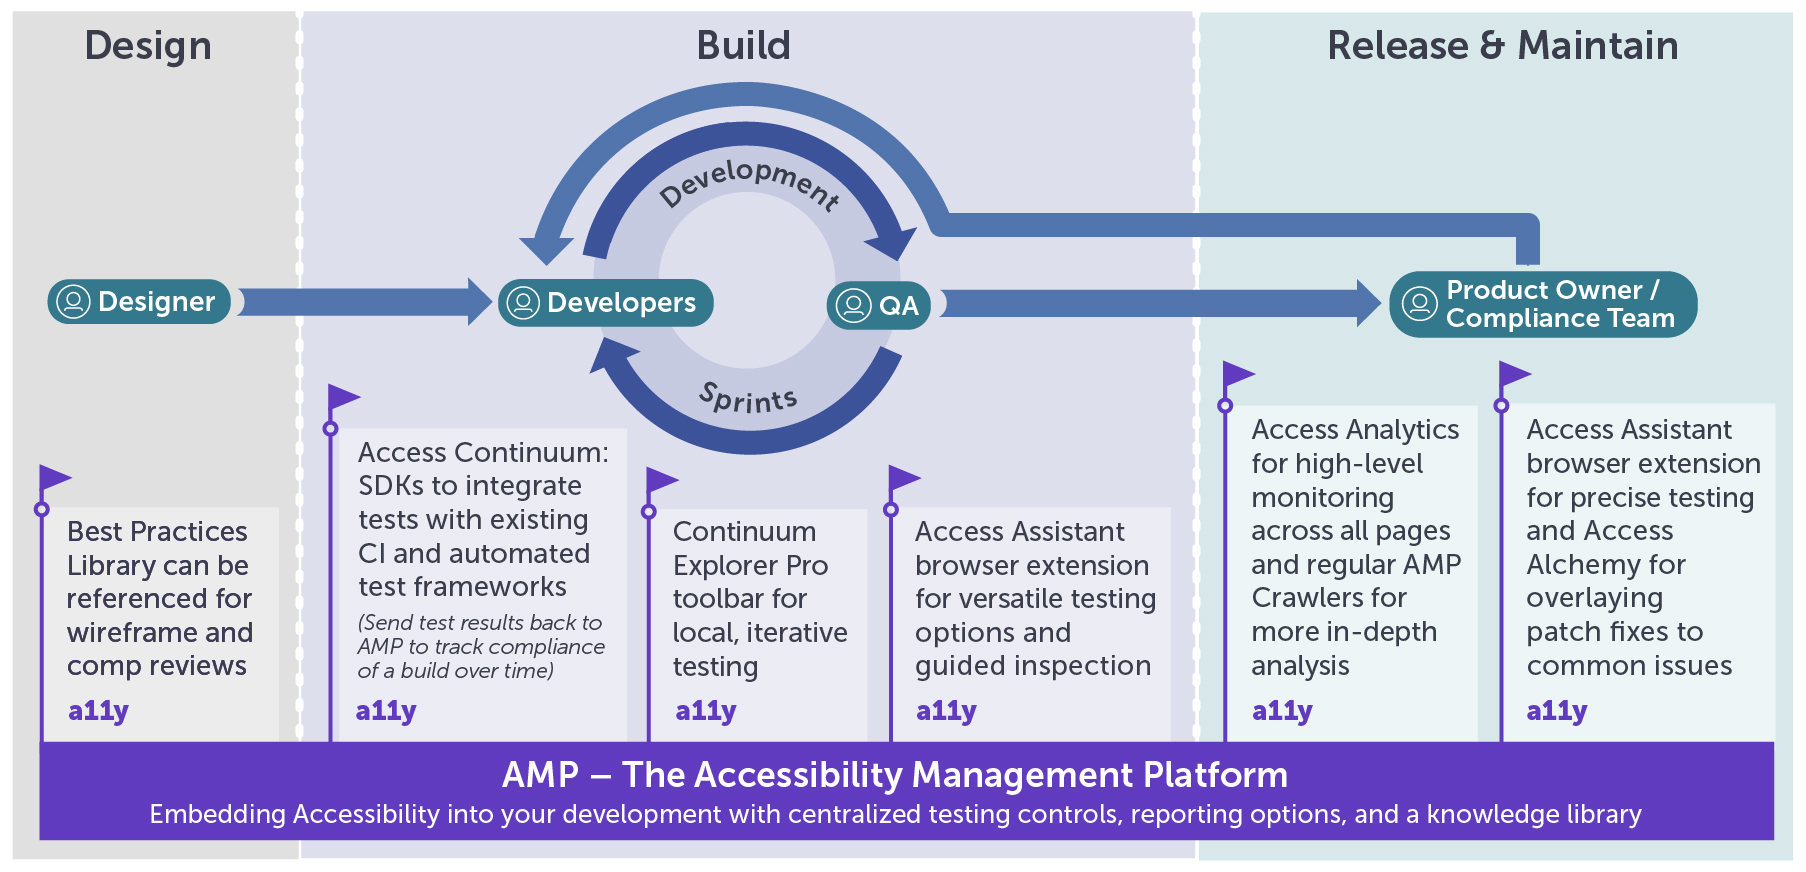 Diagram showing how AMP's best practices library supports Designers with quick referencing, Access Continuum provides SDKs to integrate with CI environments and send test results to AMP, Continuum Explorer Pro toolbar for local dev testing, Access Assistant for versatile testing options out of the browser in QA stage, and then Access Analytics, AMP Crawlers, and Access Assistant in the Release stage for high-level monitoring, scans, and precise testing along with Alchemy for patching some common issues.